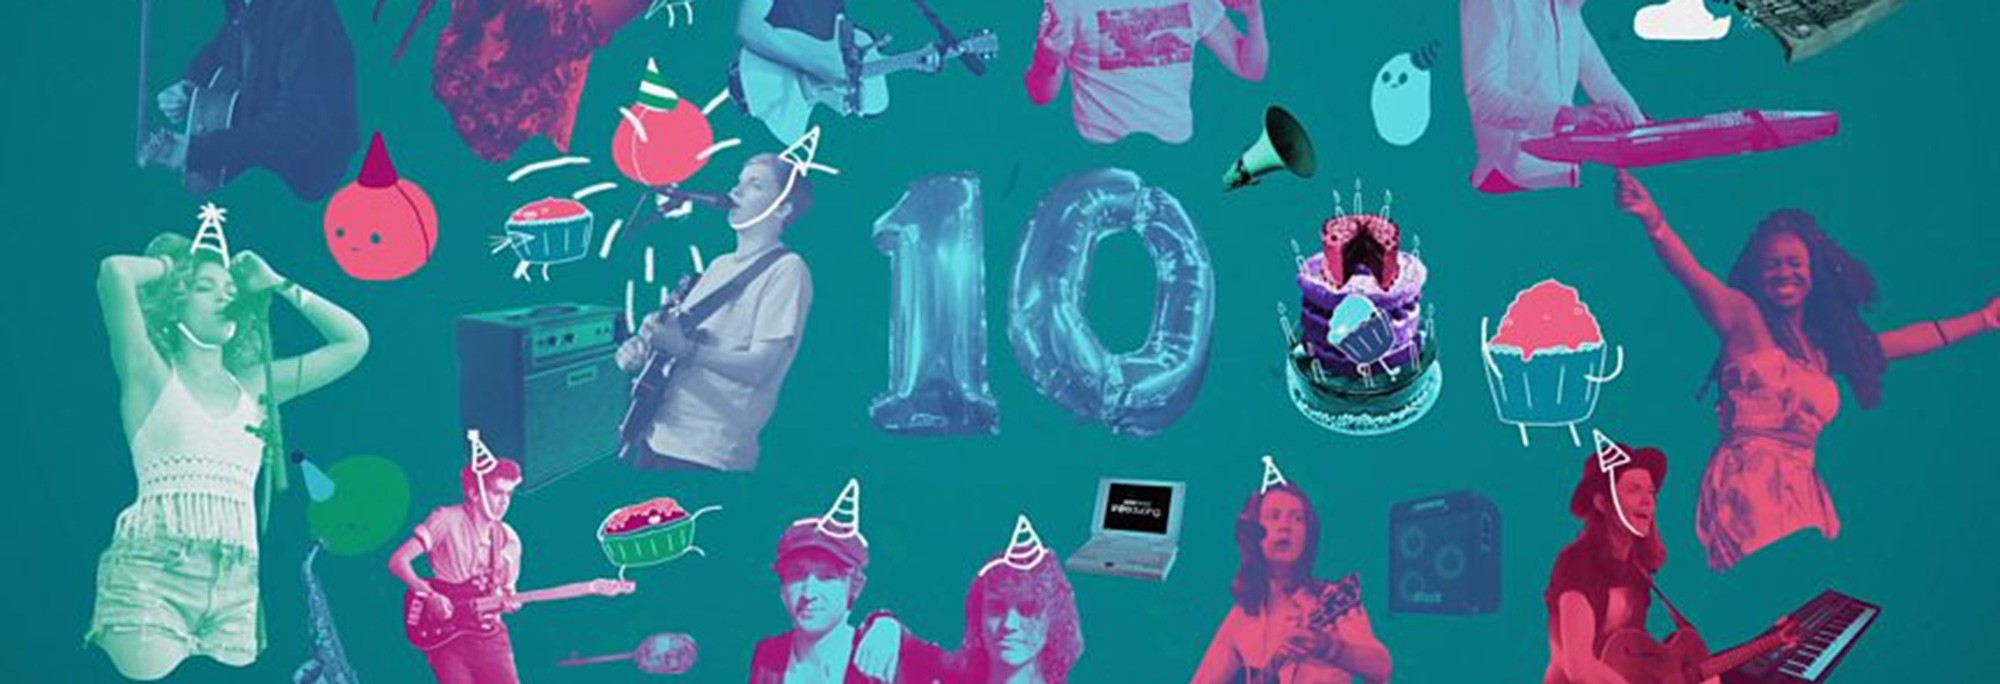 BBC Introducing - Celebrating 10 Years